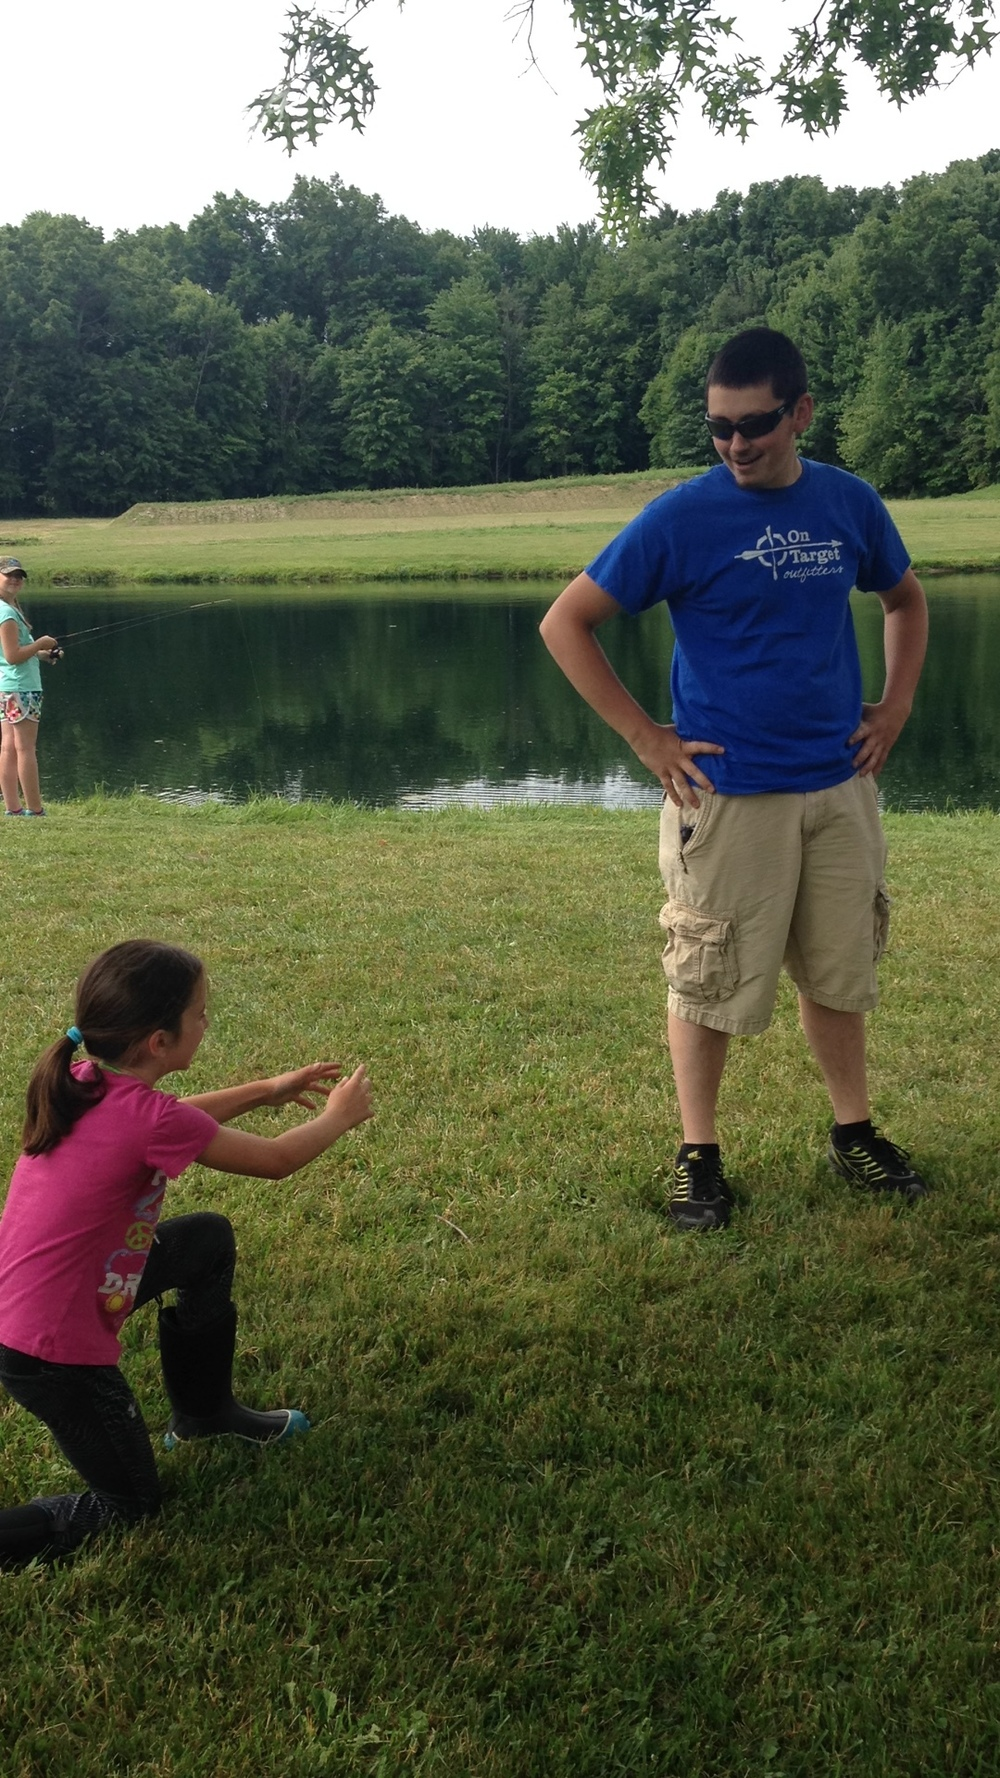 Yes, this is a camper proposing to Clayton. And yes, she was bribed with a dilly bar to do this.